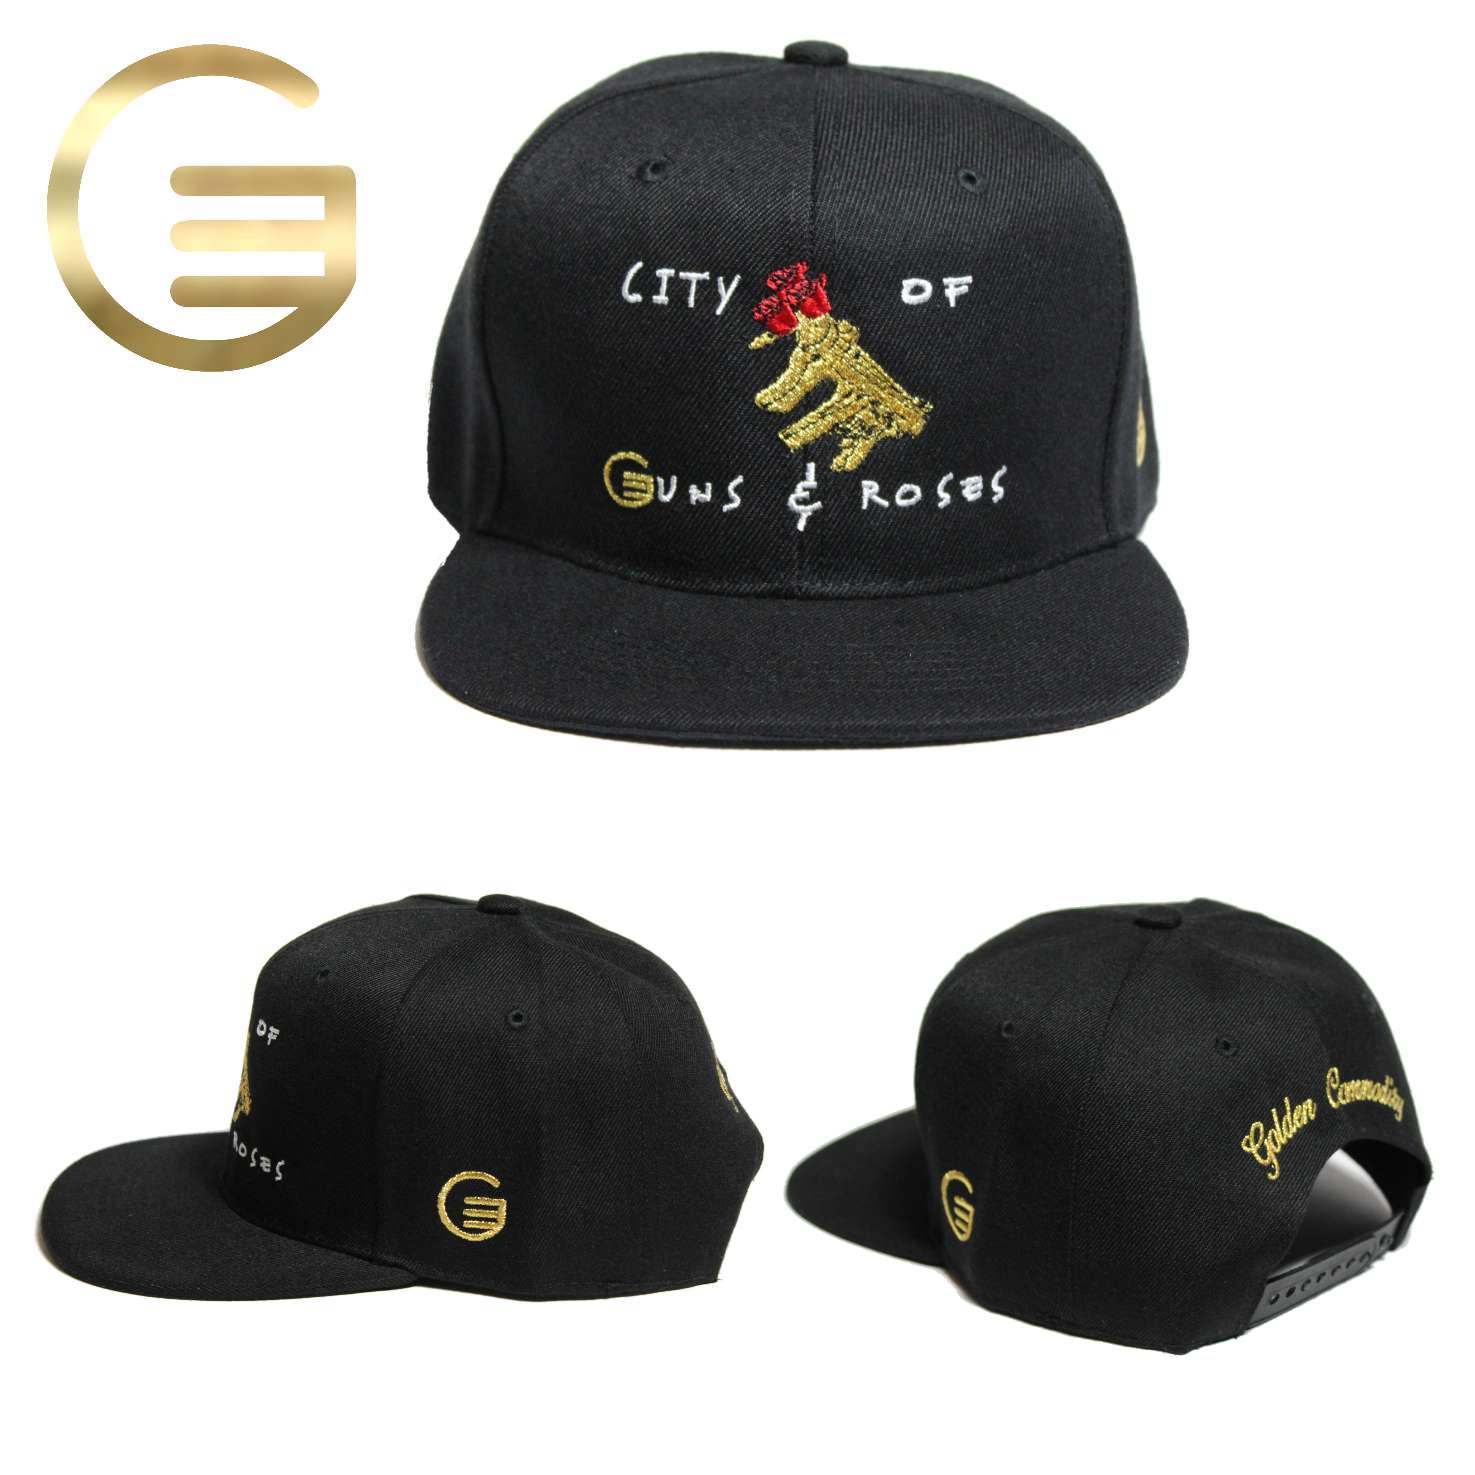 City Of Guns & Roses Collection Black Canvas Snapback